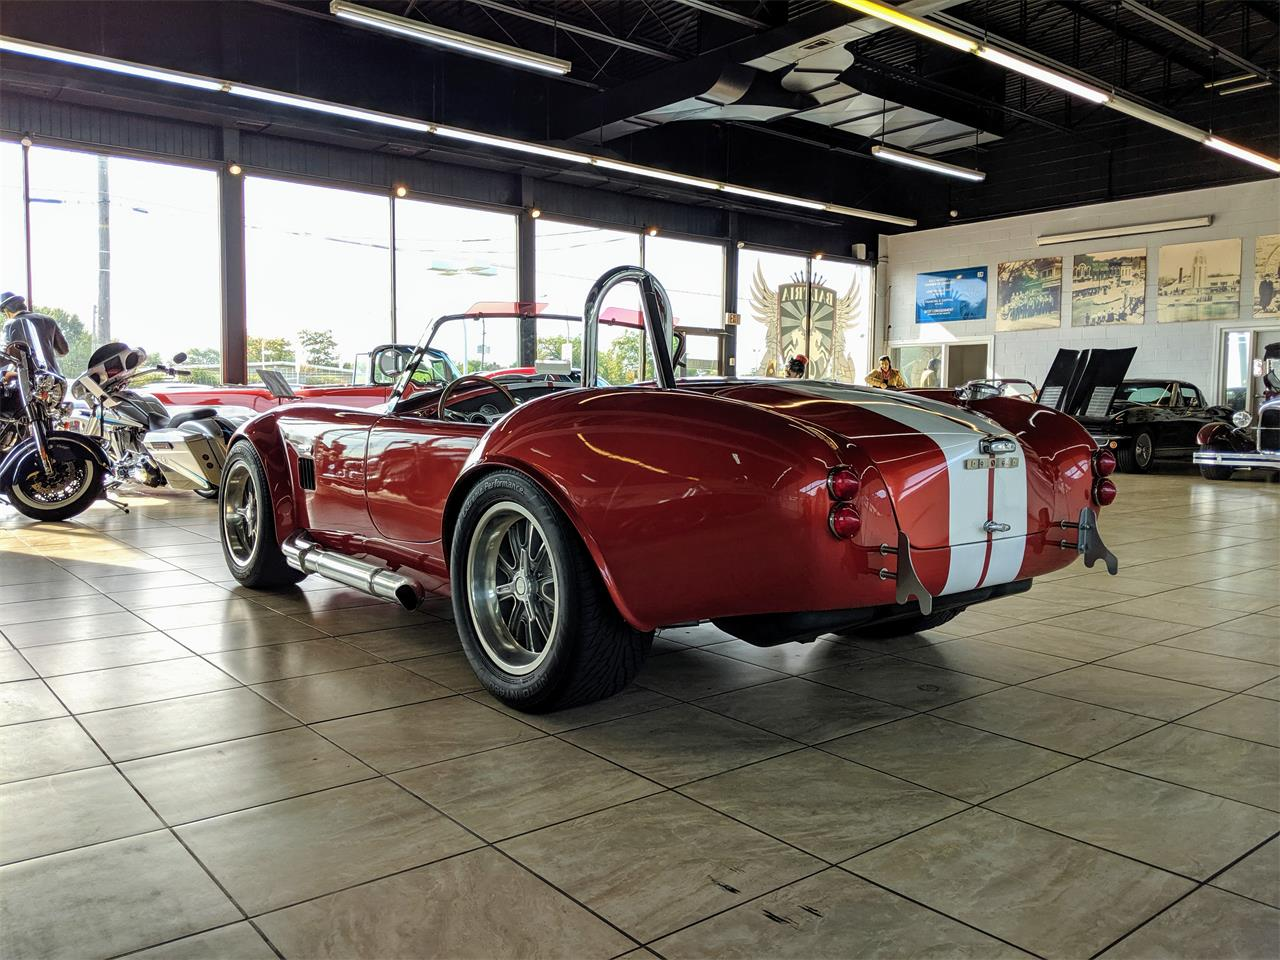 1965 Shelby Cobra Replica (CC-1274458) for sale in Saint Charles, Illinois